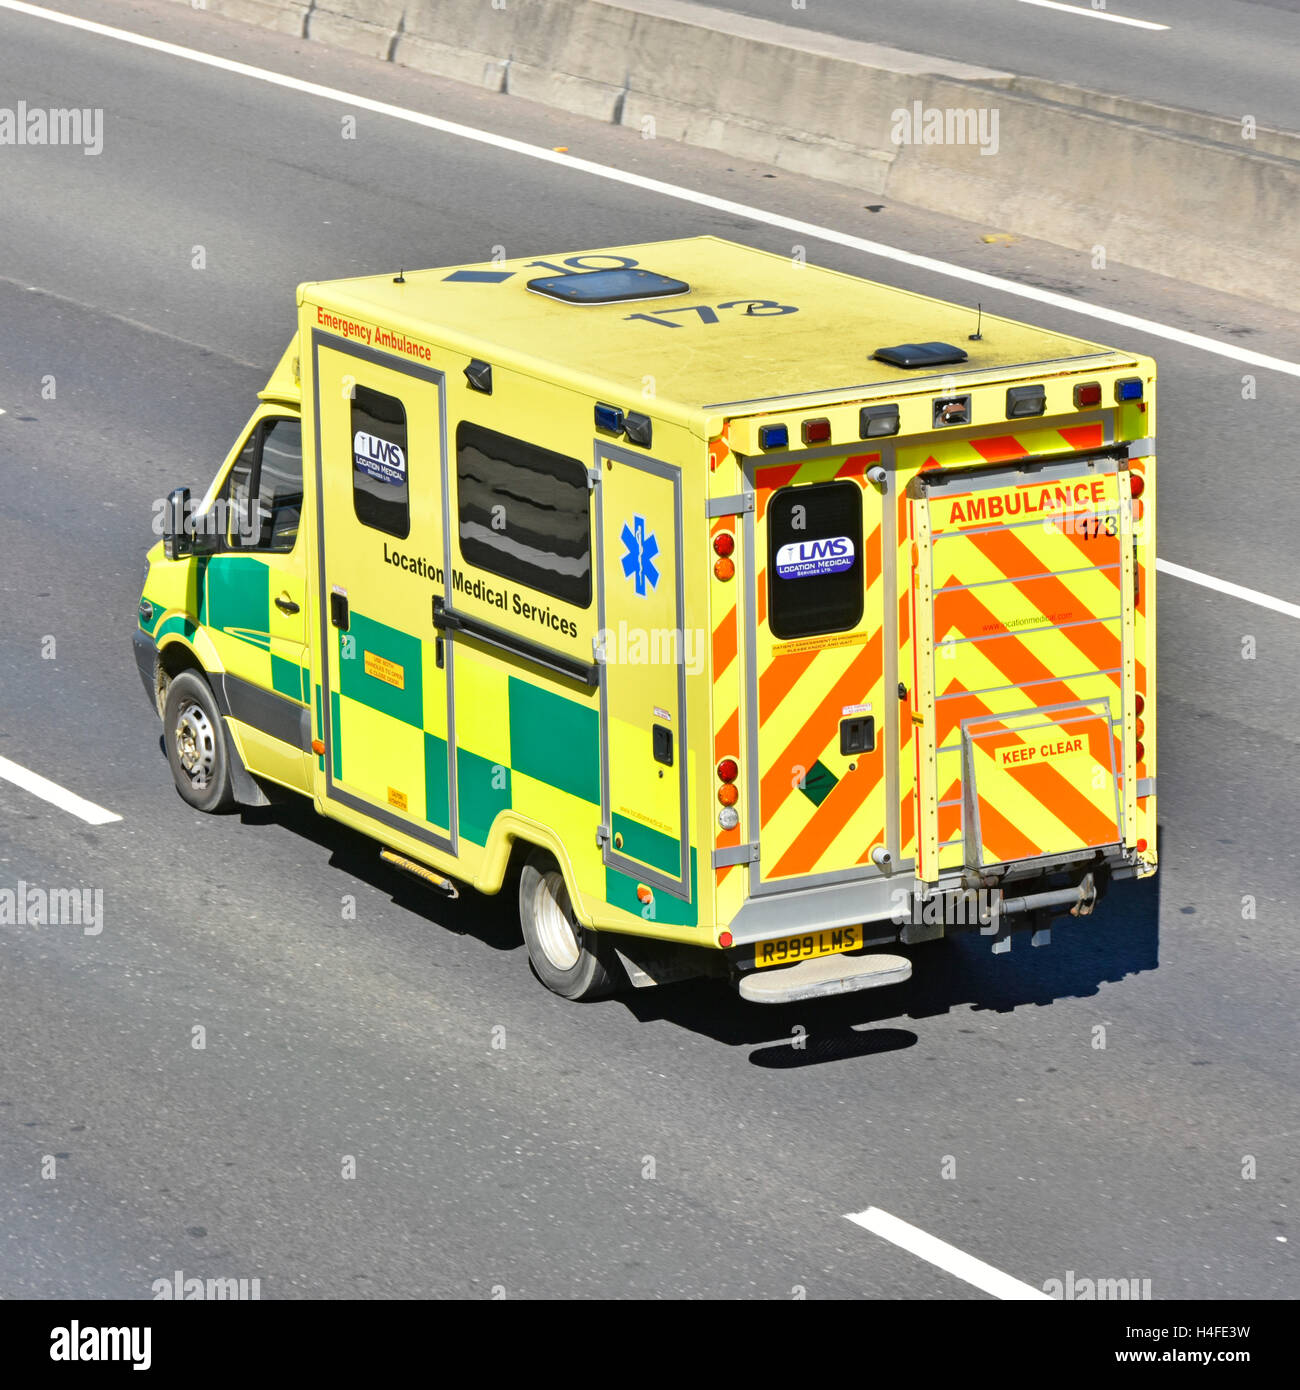 Back & side view private healthcare ambulance operated by Location Medical Services (LMS) patient health care - Stock Image